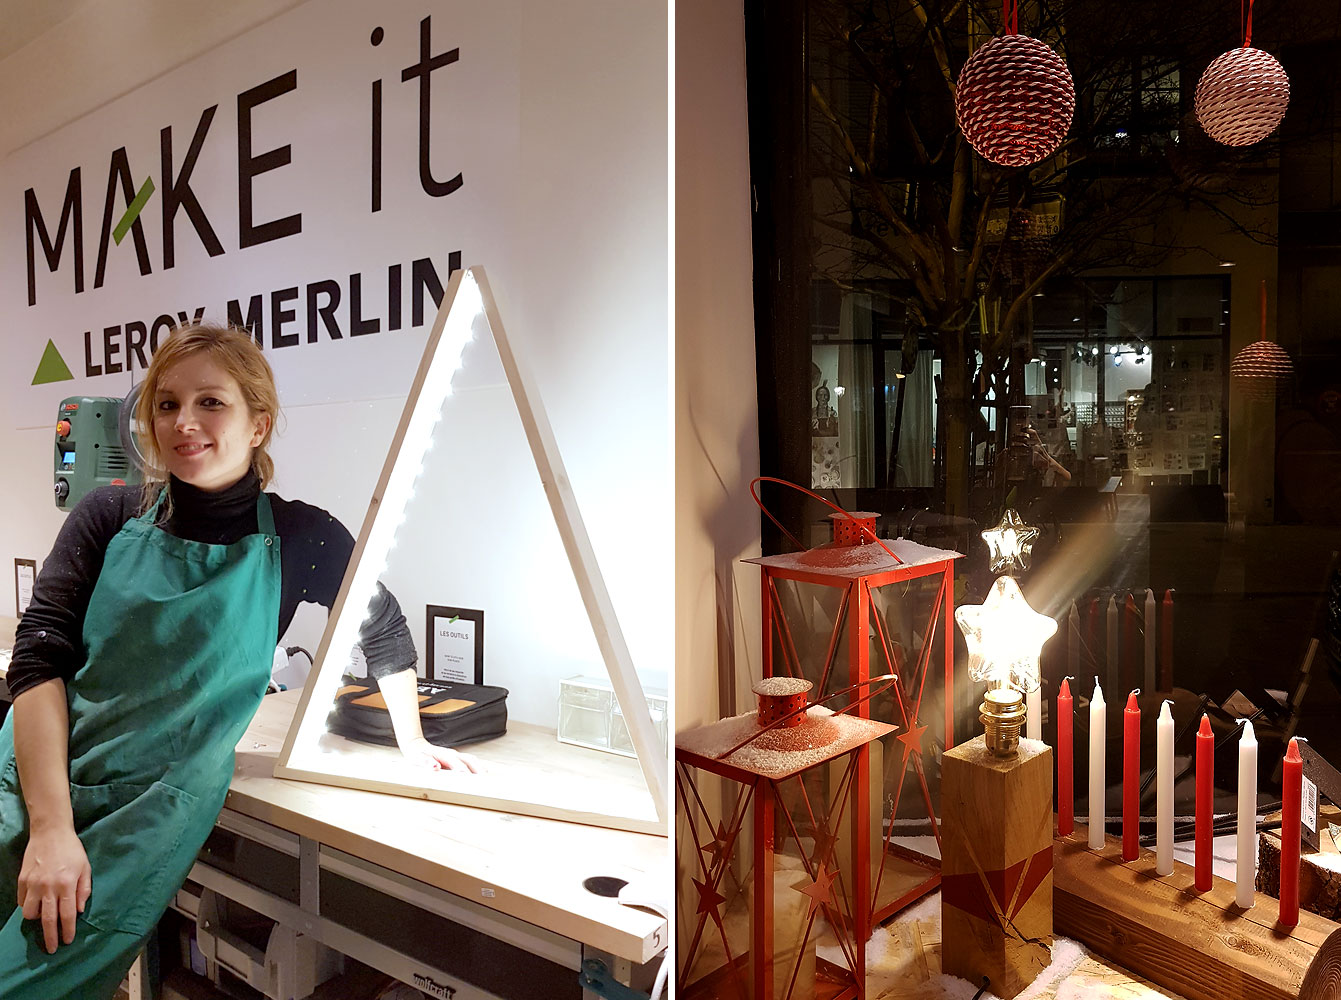 Le Nouveau Concept Store Diy De Leroy Merlin Make It